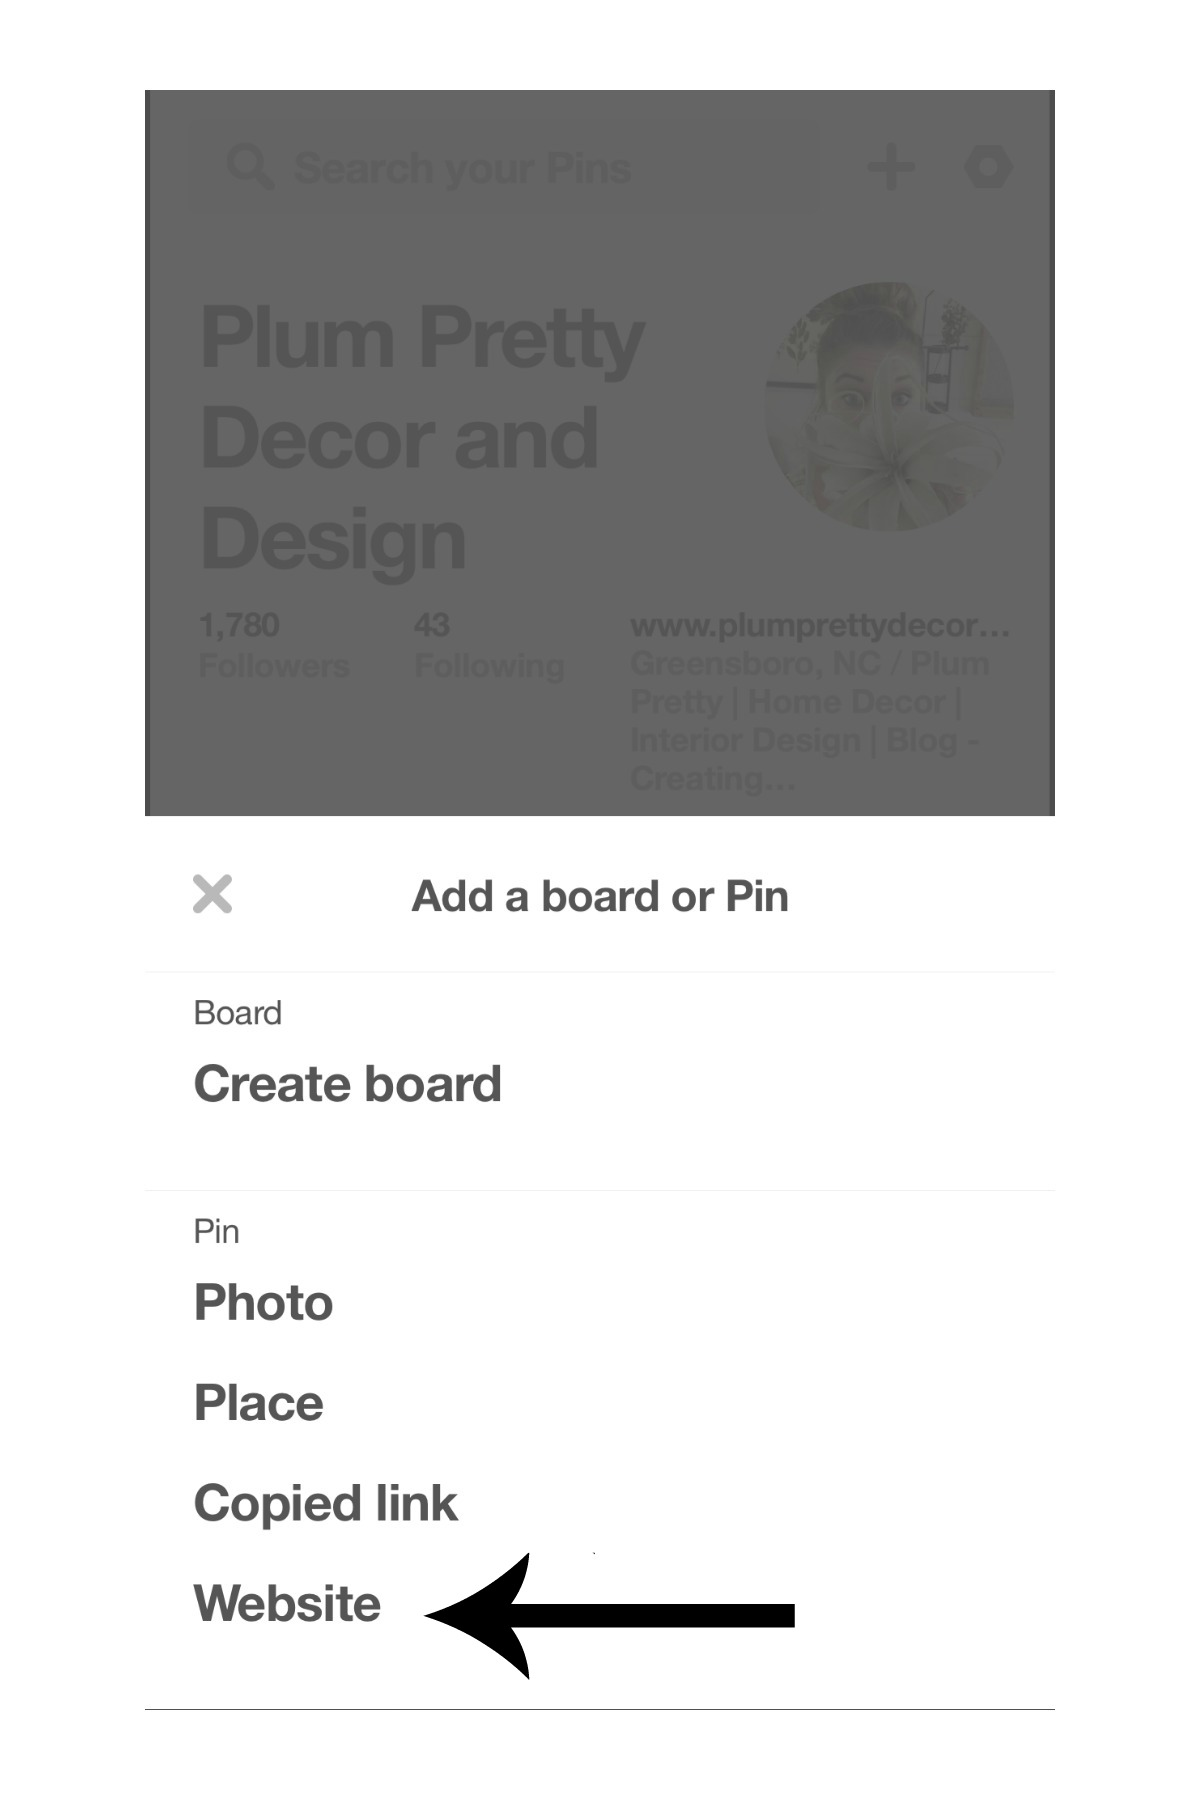 How to Save a Photo From a Website to Pinterest- Plum Pretty Decor and Design